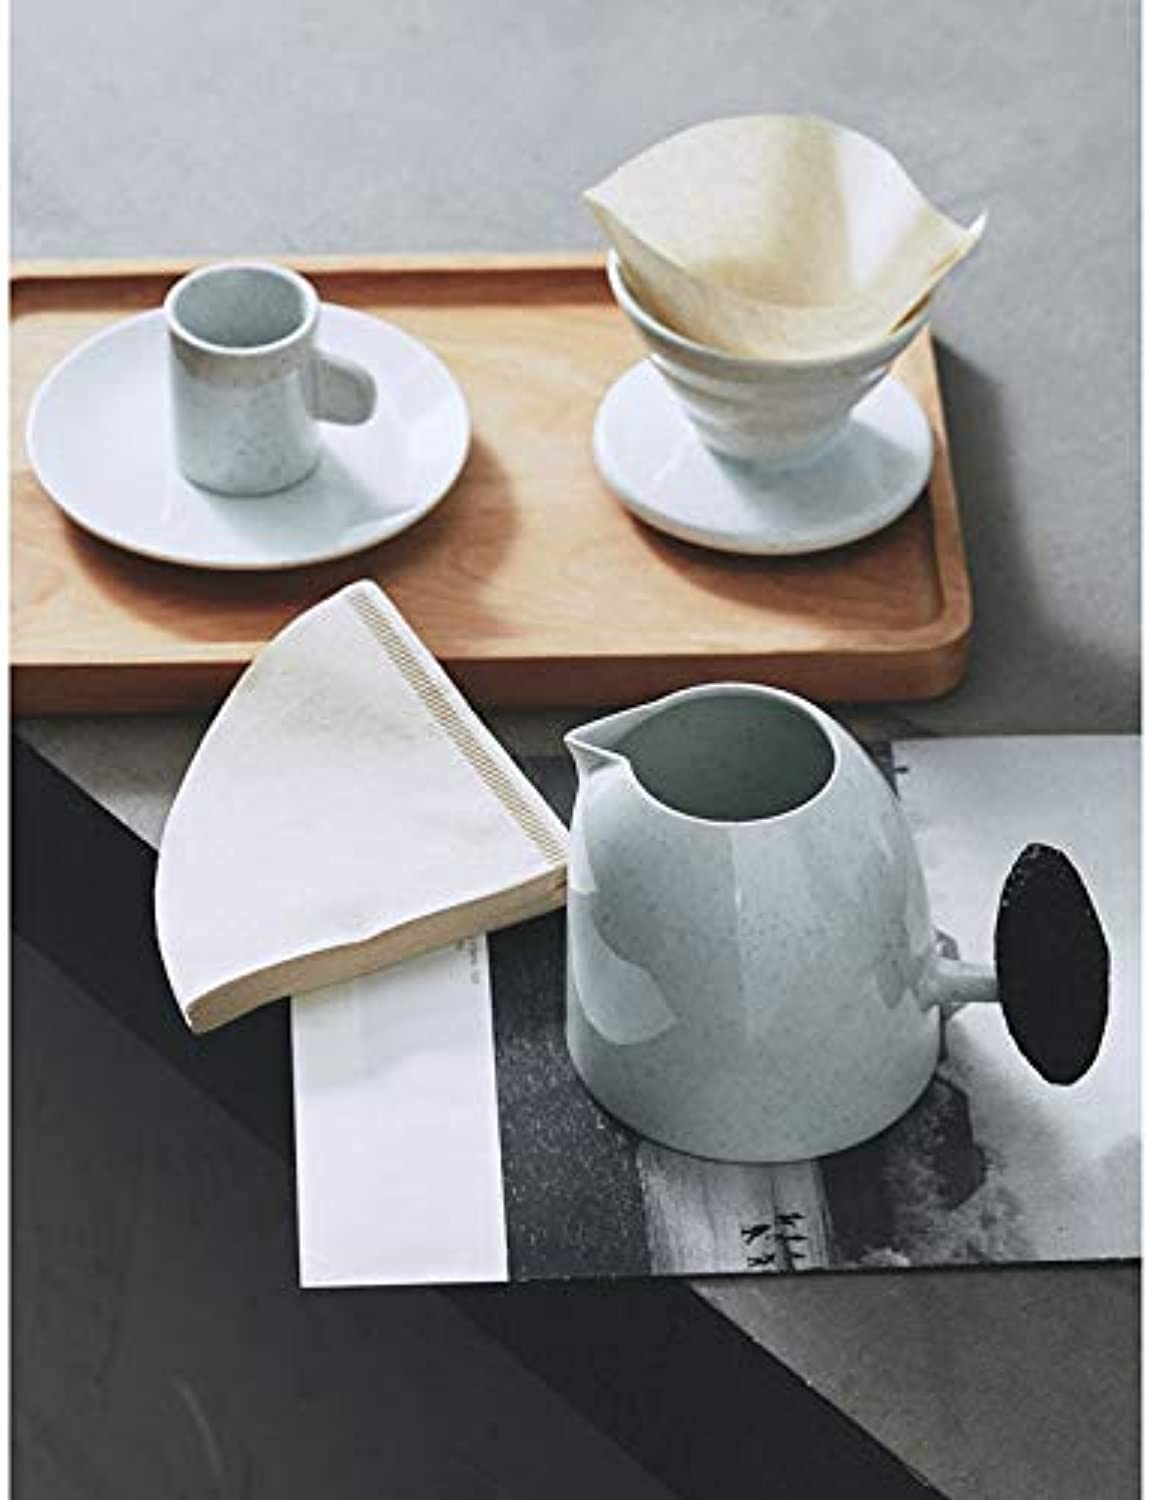 Njhswlti Japanese-Style Coffee Cup and Saucer Hand-Washed Coffee Pot Stonouveauare Filter Cup Condensed Cup Latte Nordic Creative Coffee Cup, a Set